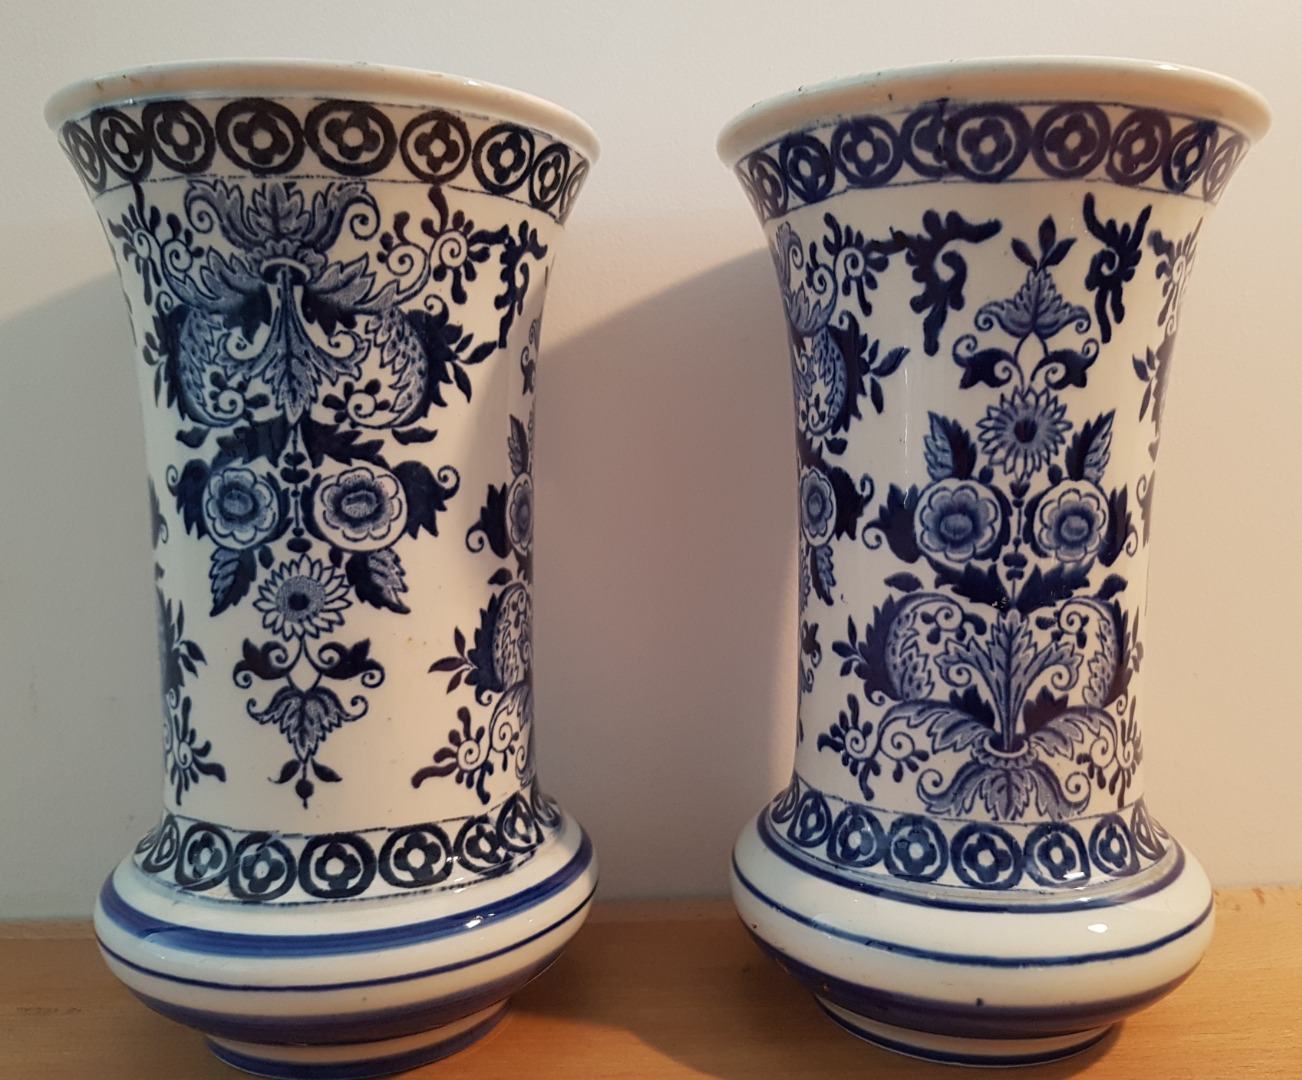 PAIR OF GIEN FAIENCE VASES